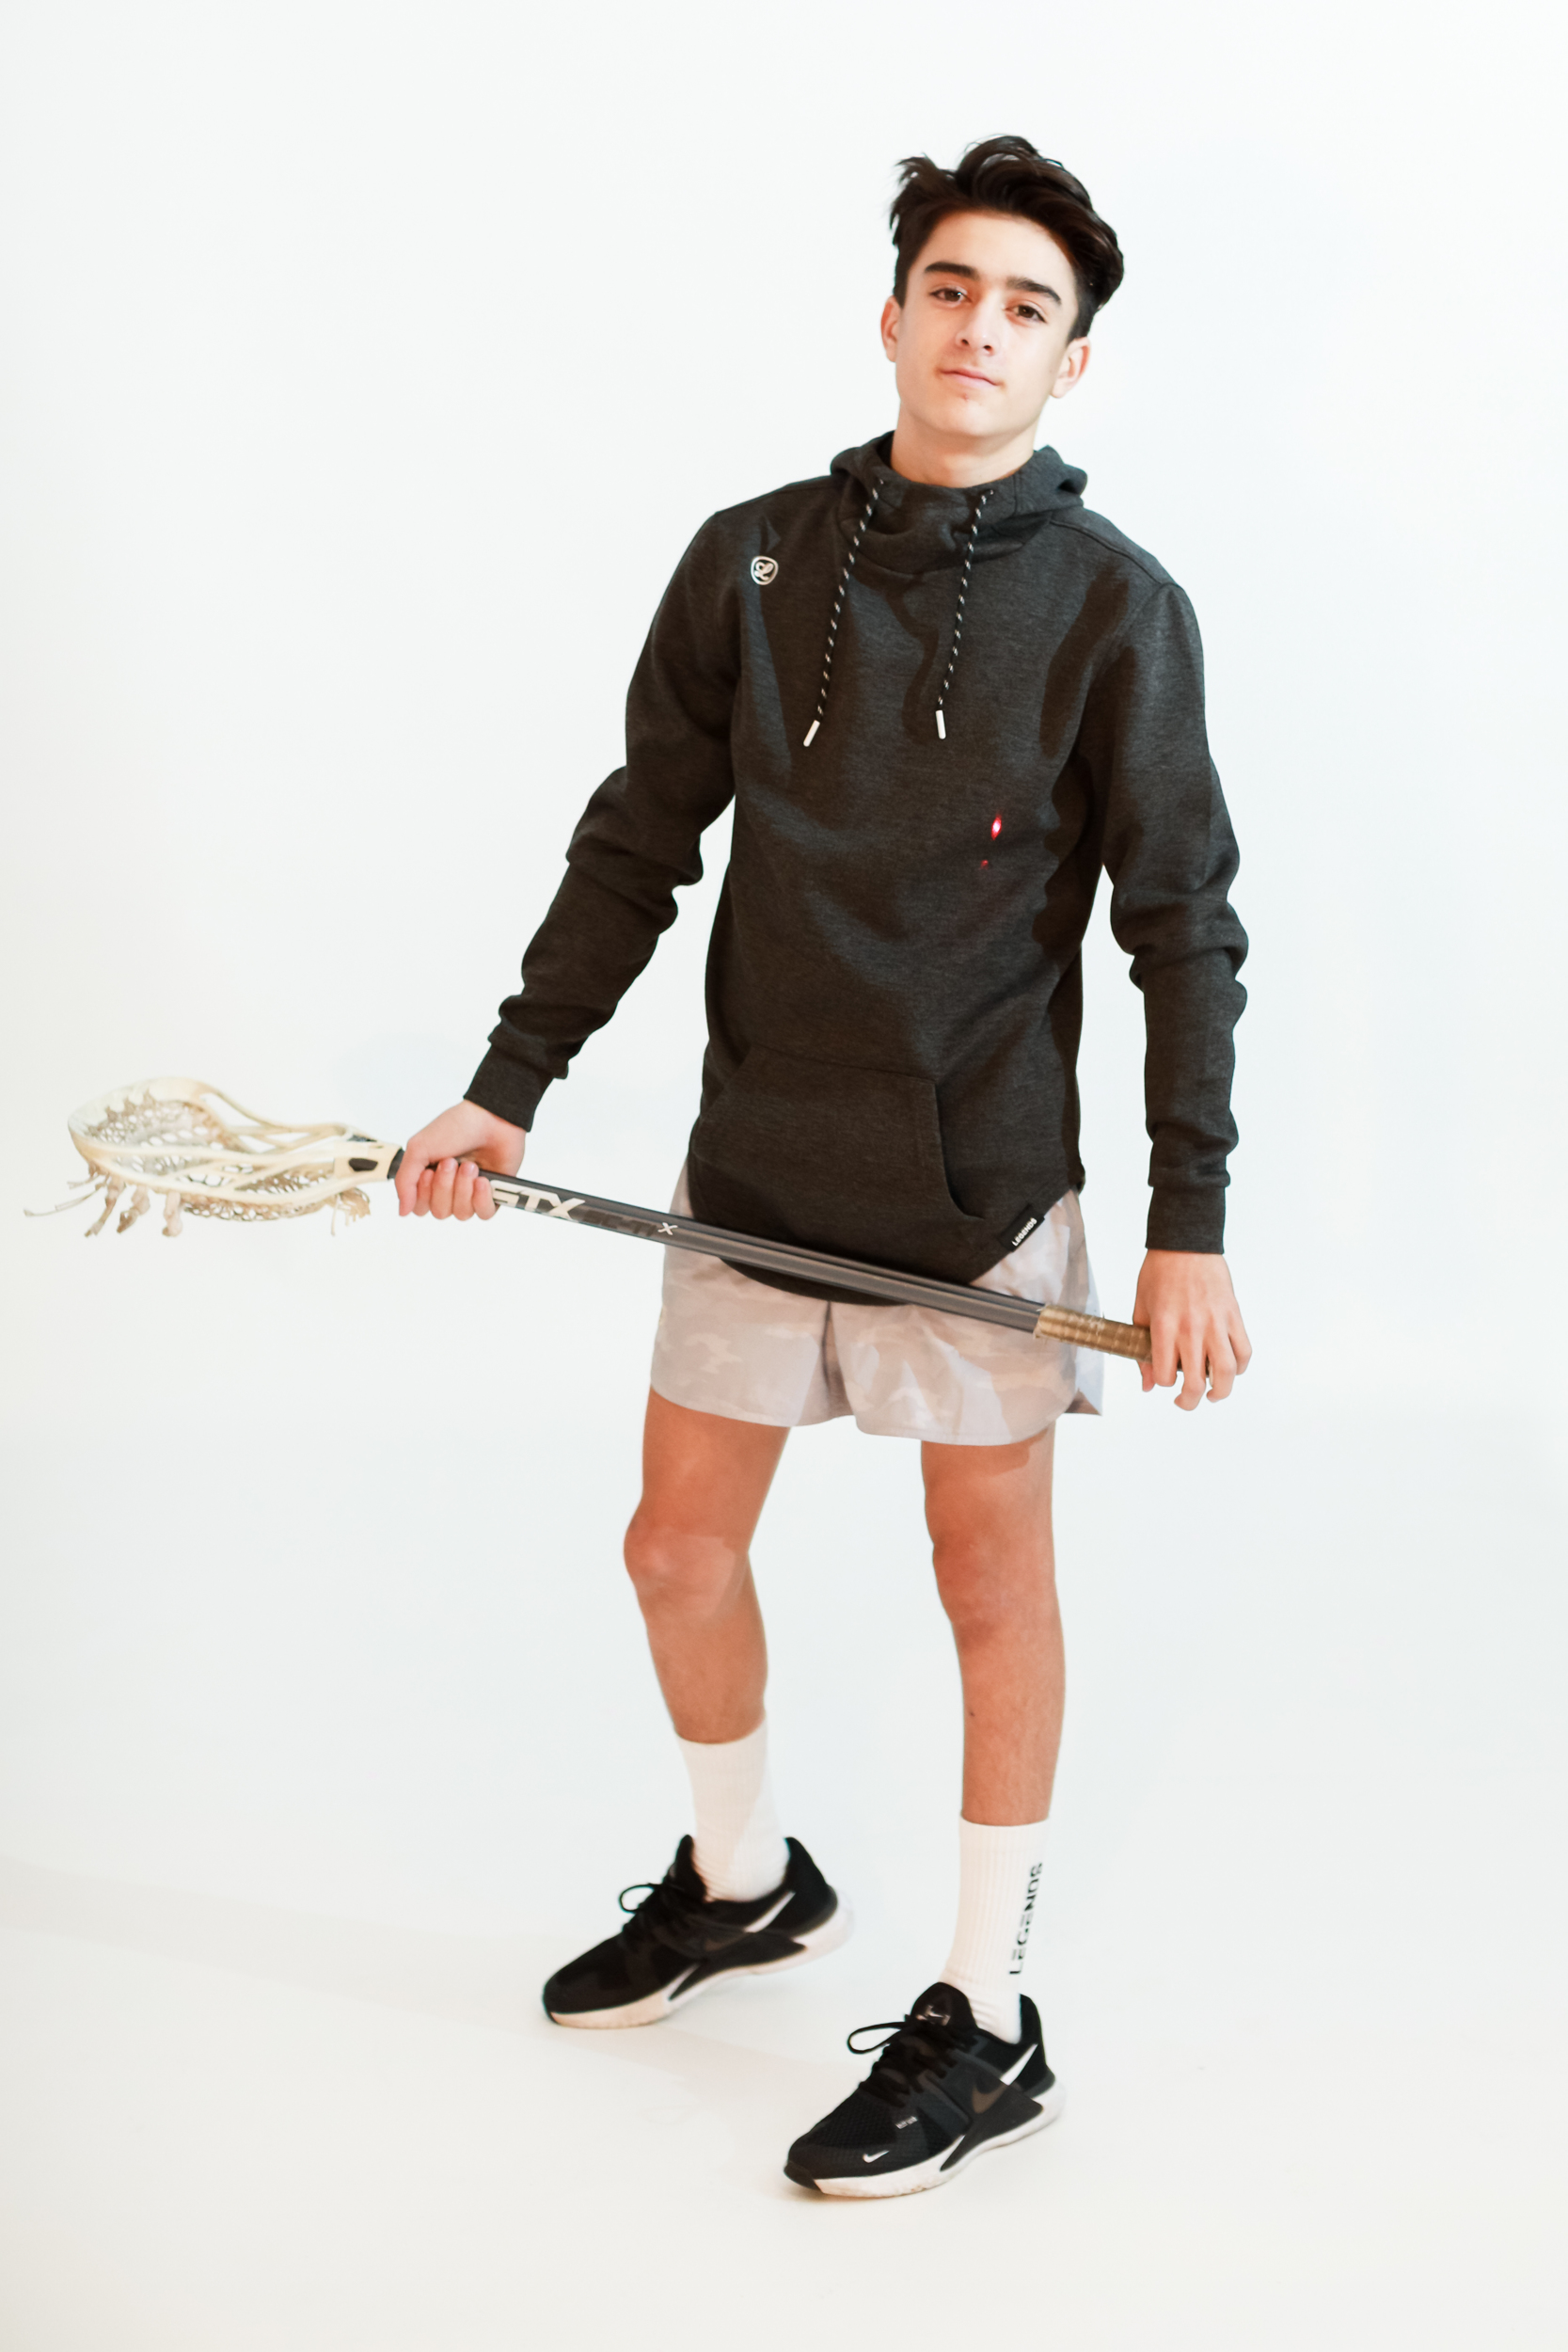 boy in lacrosse gear